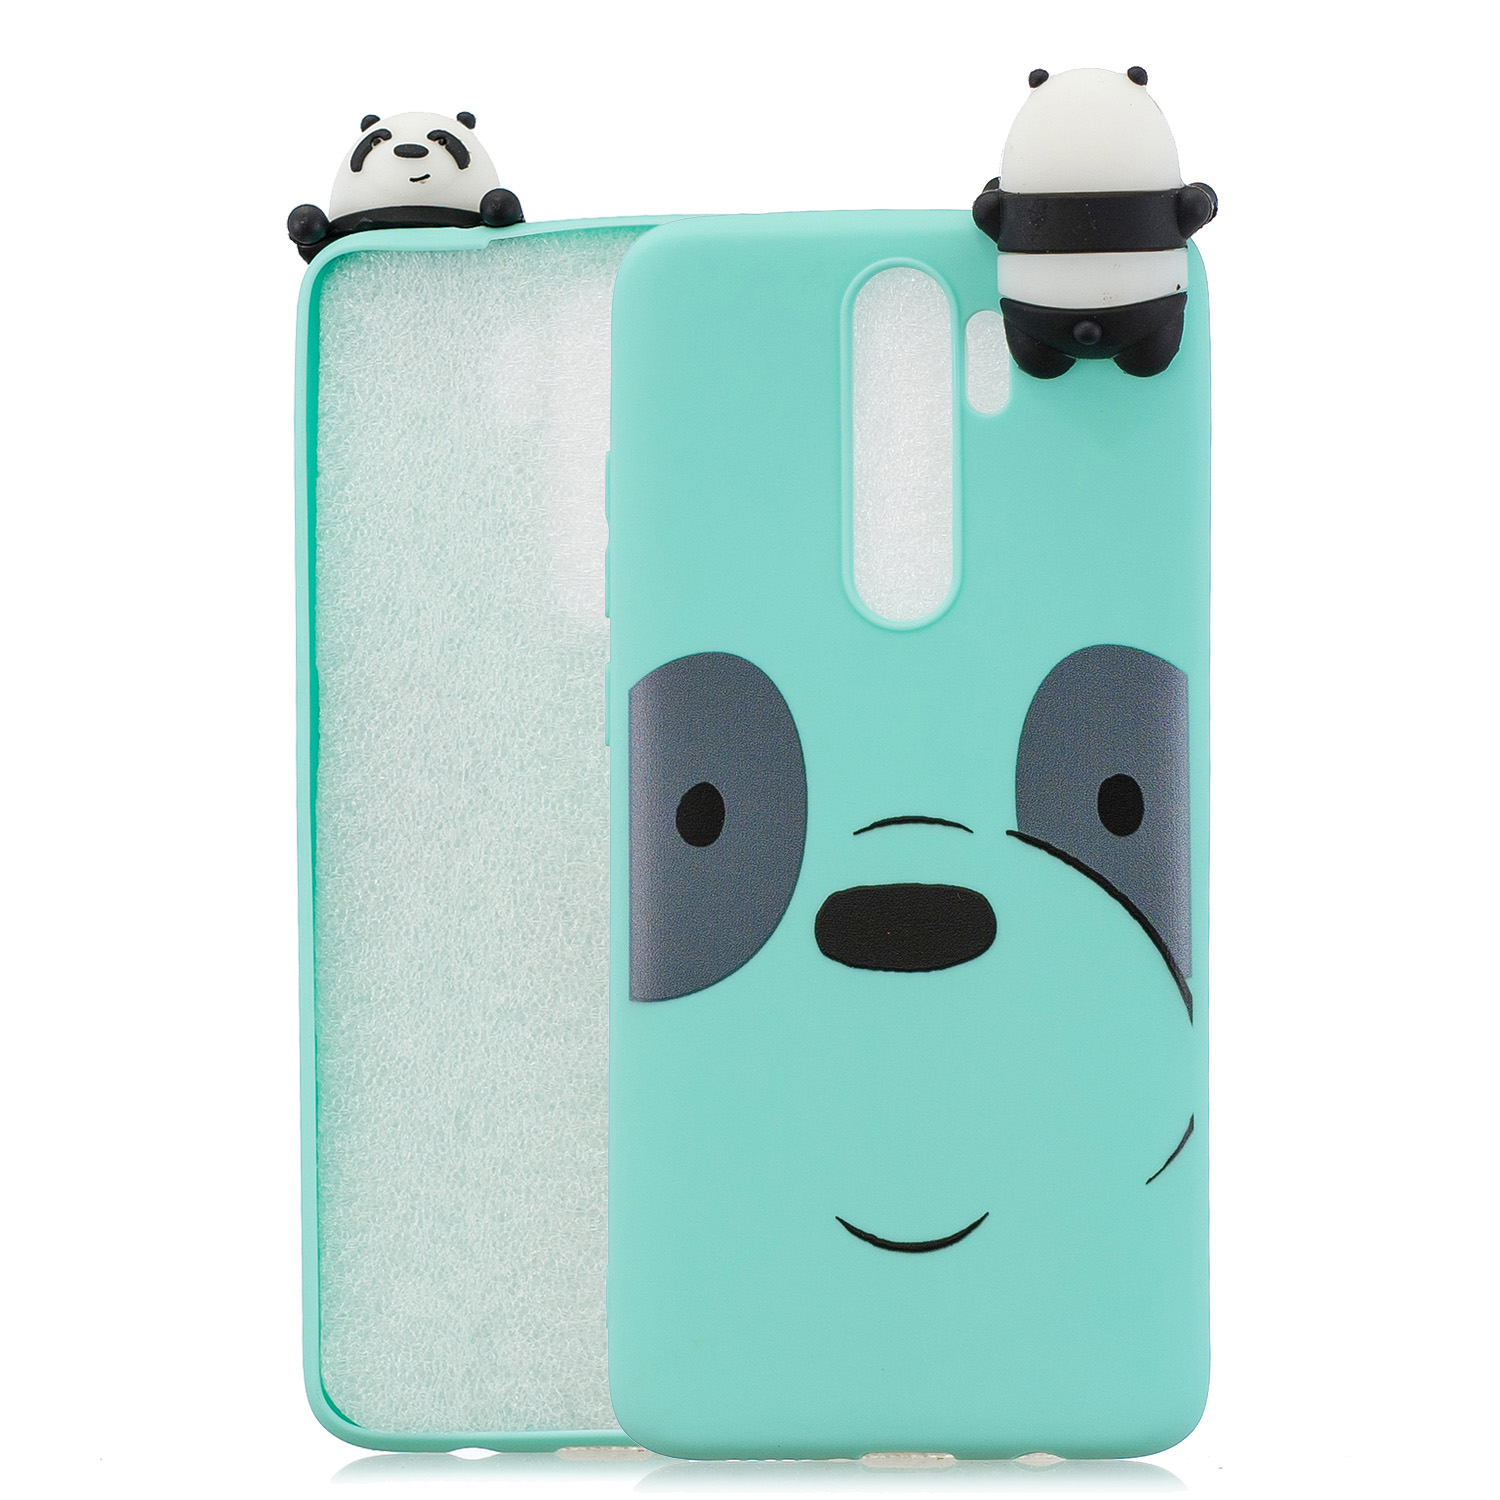 For Redmi NOTE 8 NOTE 8 pro 3D Color Painting Pattern Drop Protection Soft TPU Back Cover Mobile Phone Case Light blue